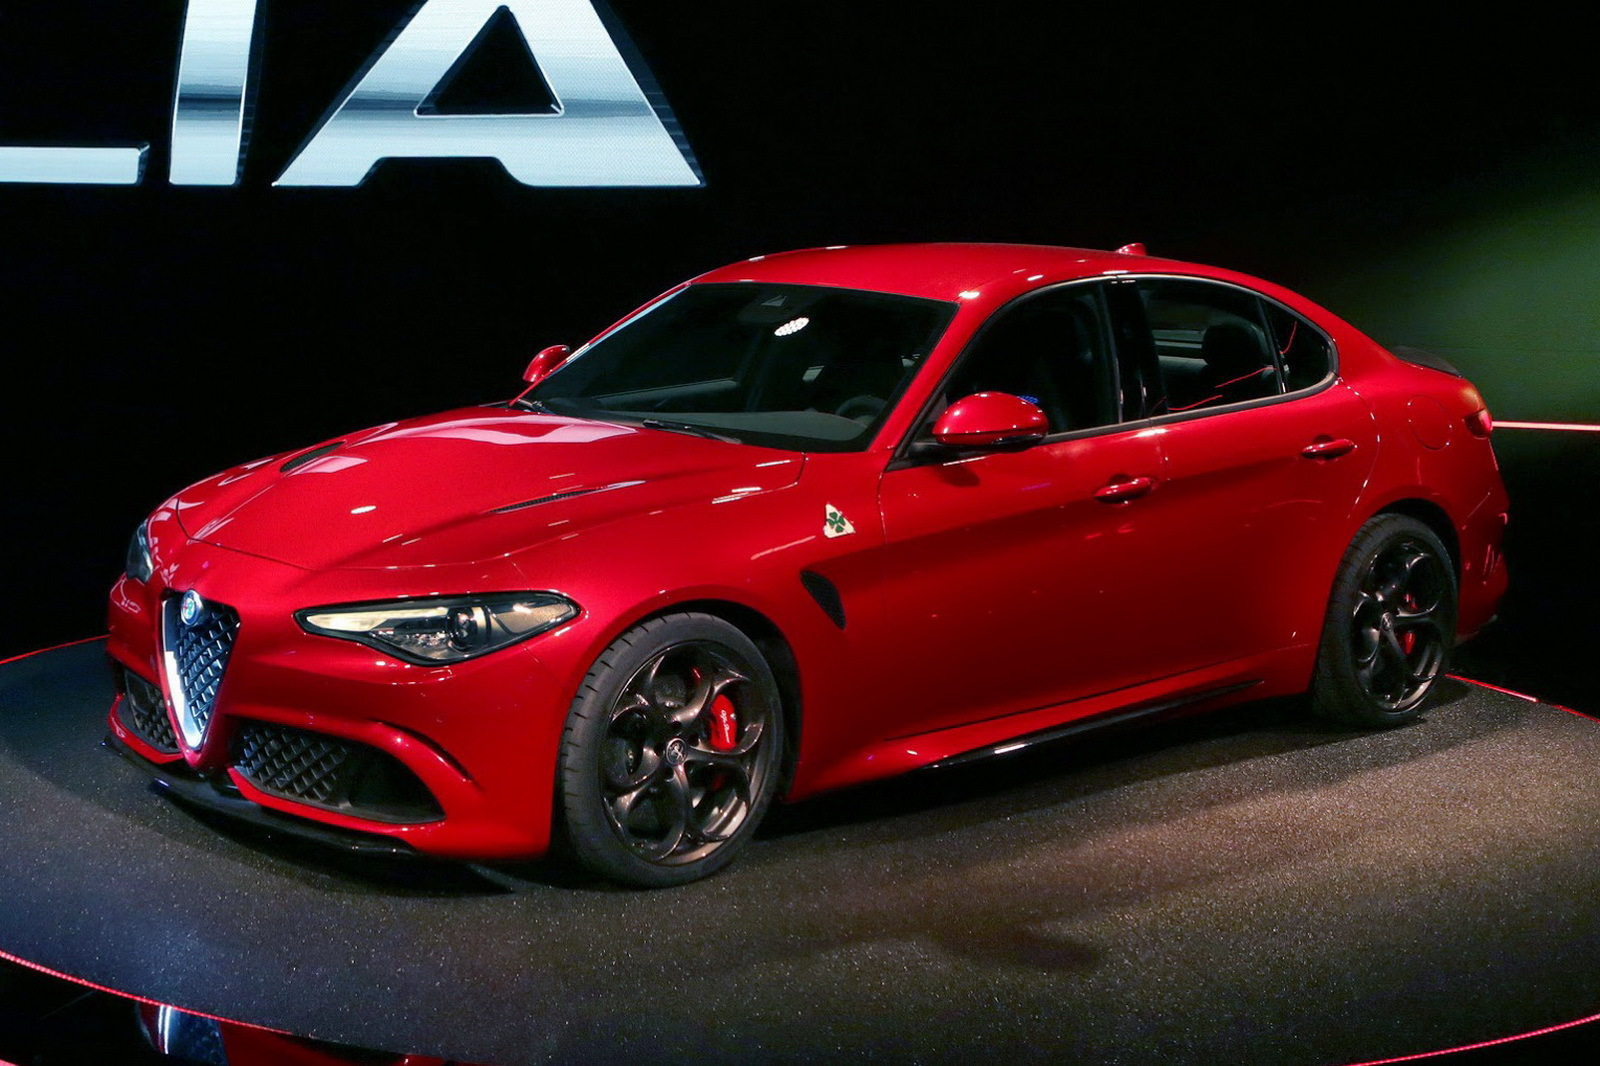 alfa romeo giulia 2015 wallpapers hd free download. Black Bedroom Furniture Sets. Home Design Ideas